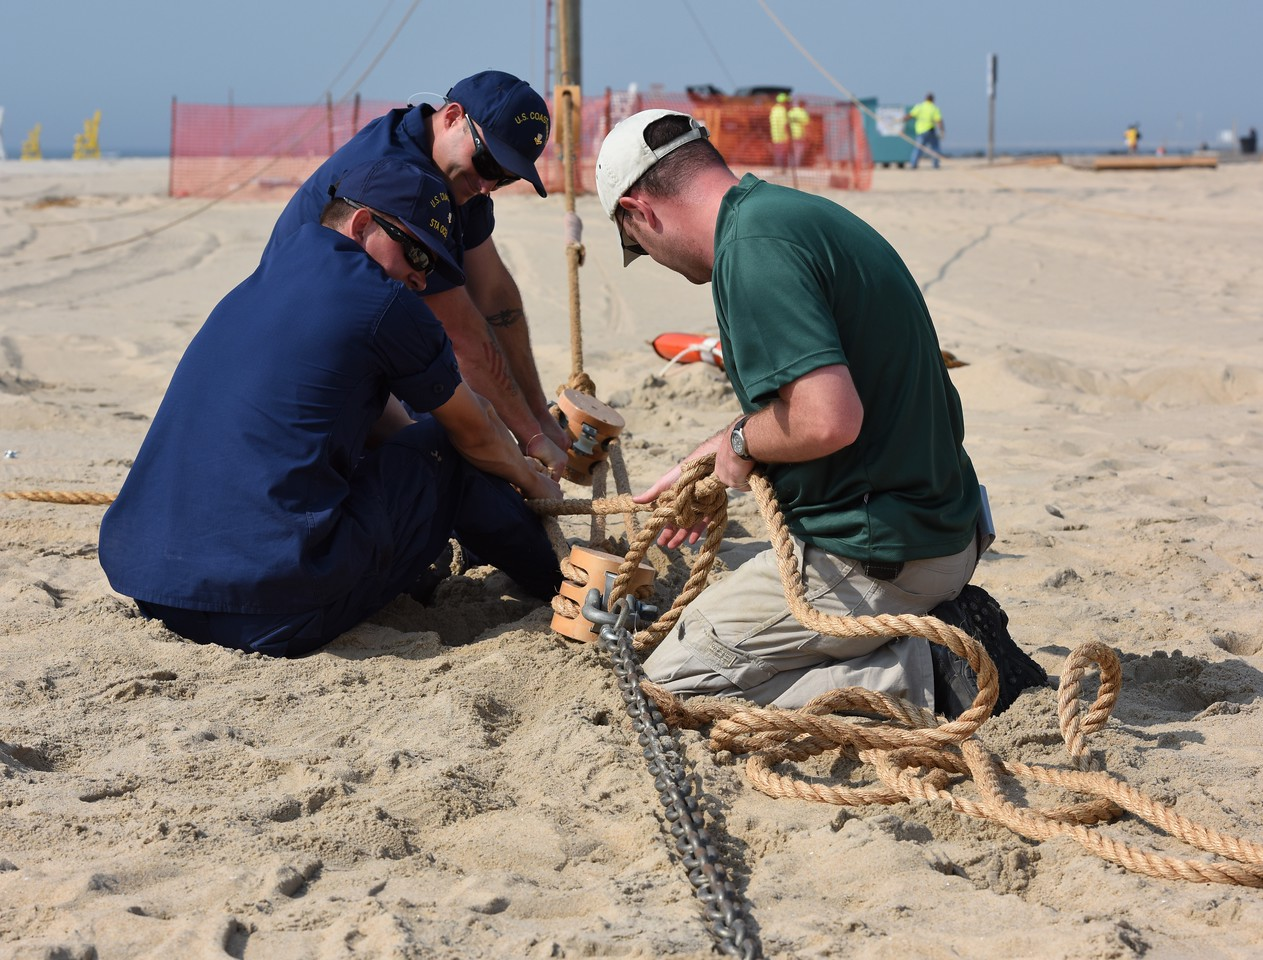 Tying big coarse rope is tough, proper tension must be maintained while securing the knots.